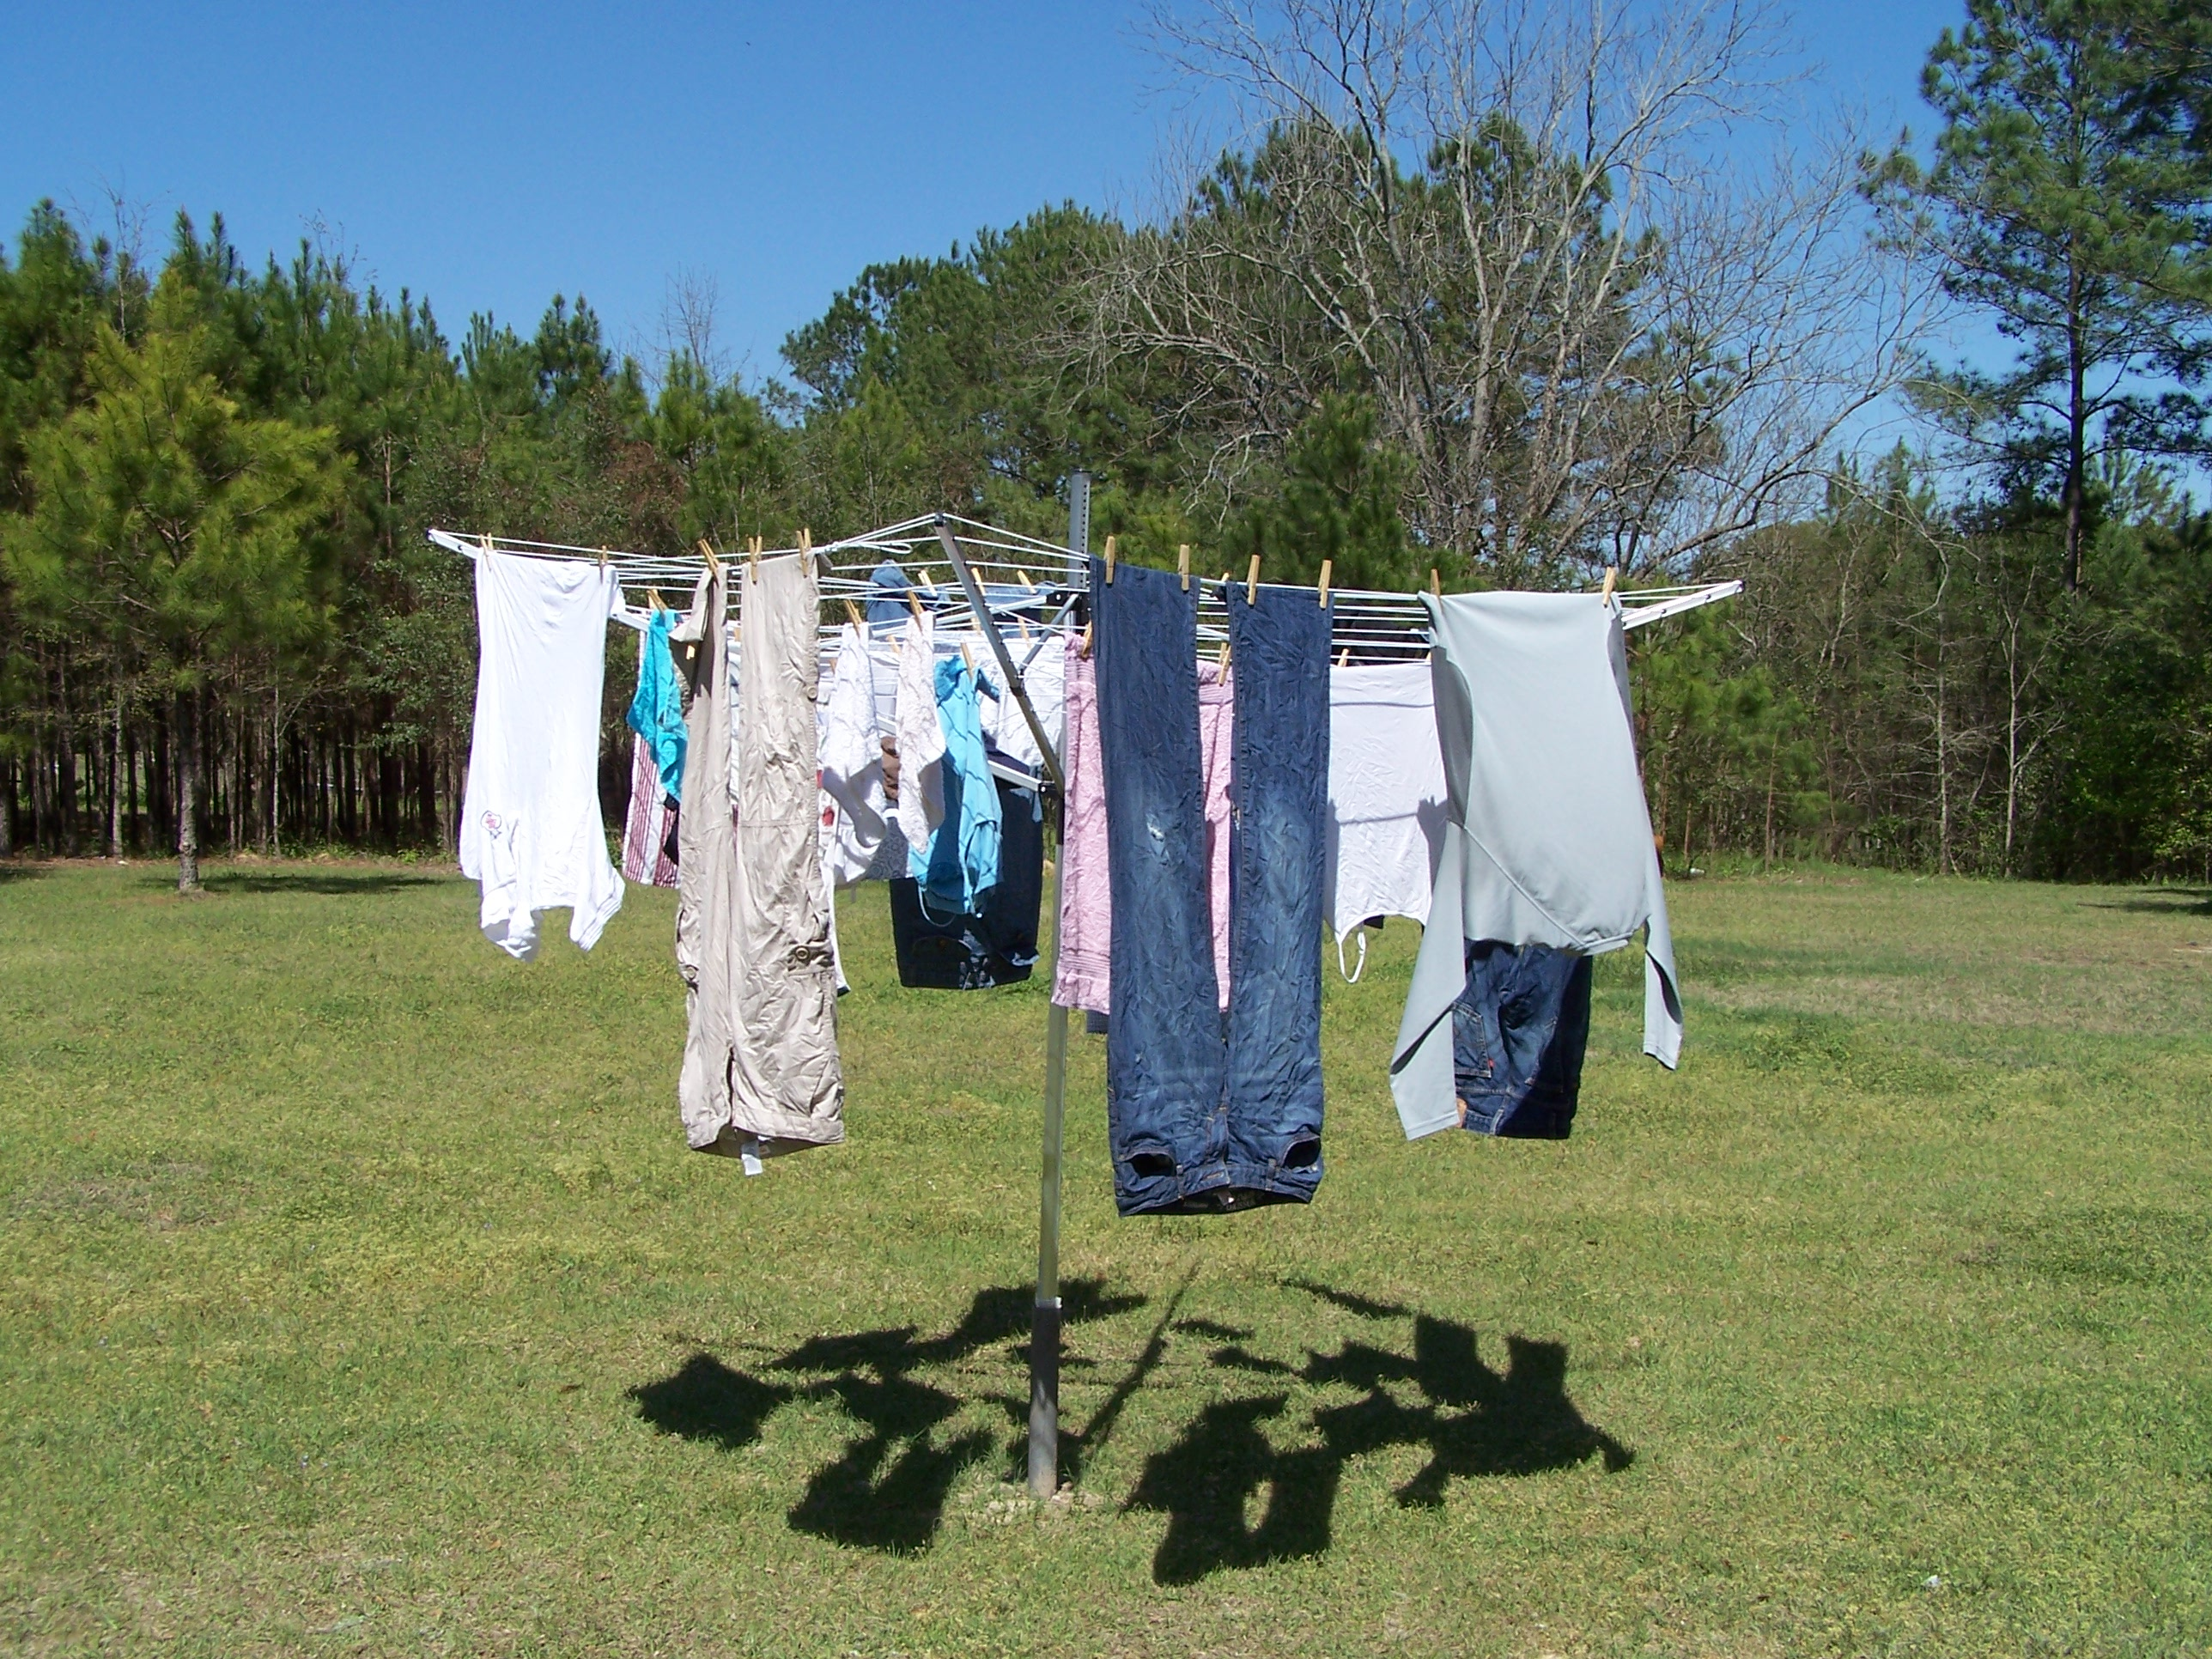 Image result for clothes drying outside images